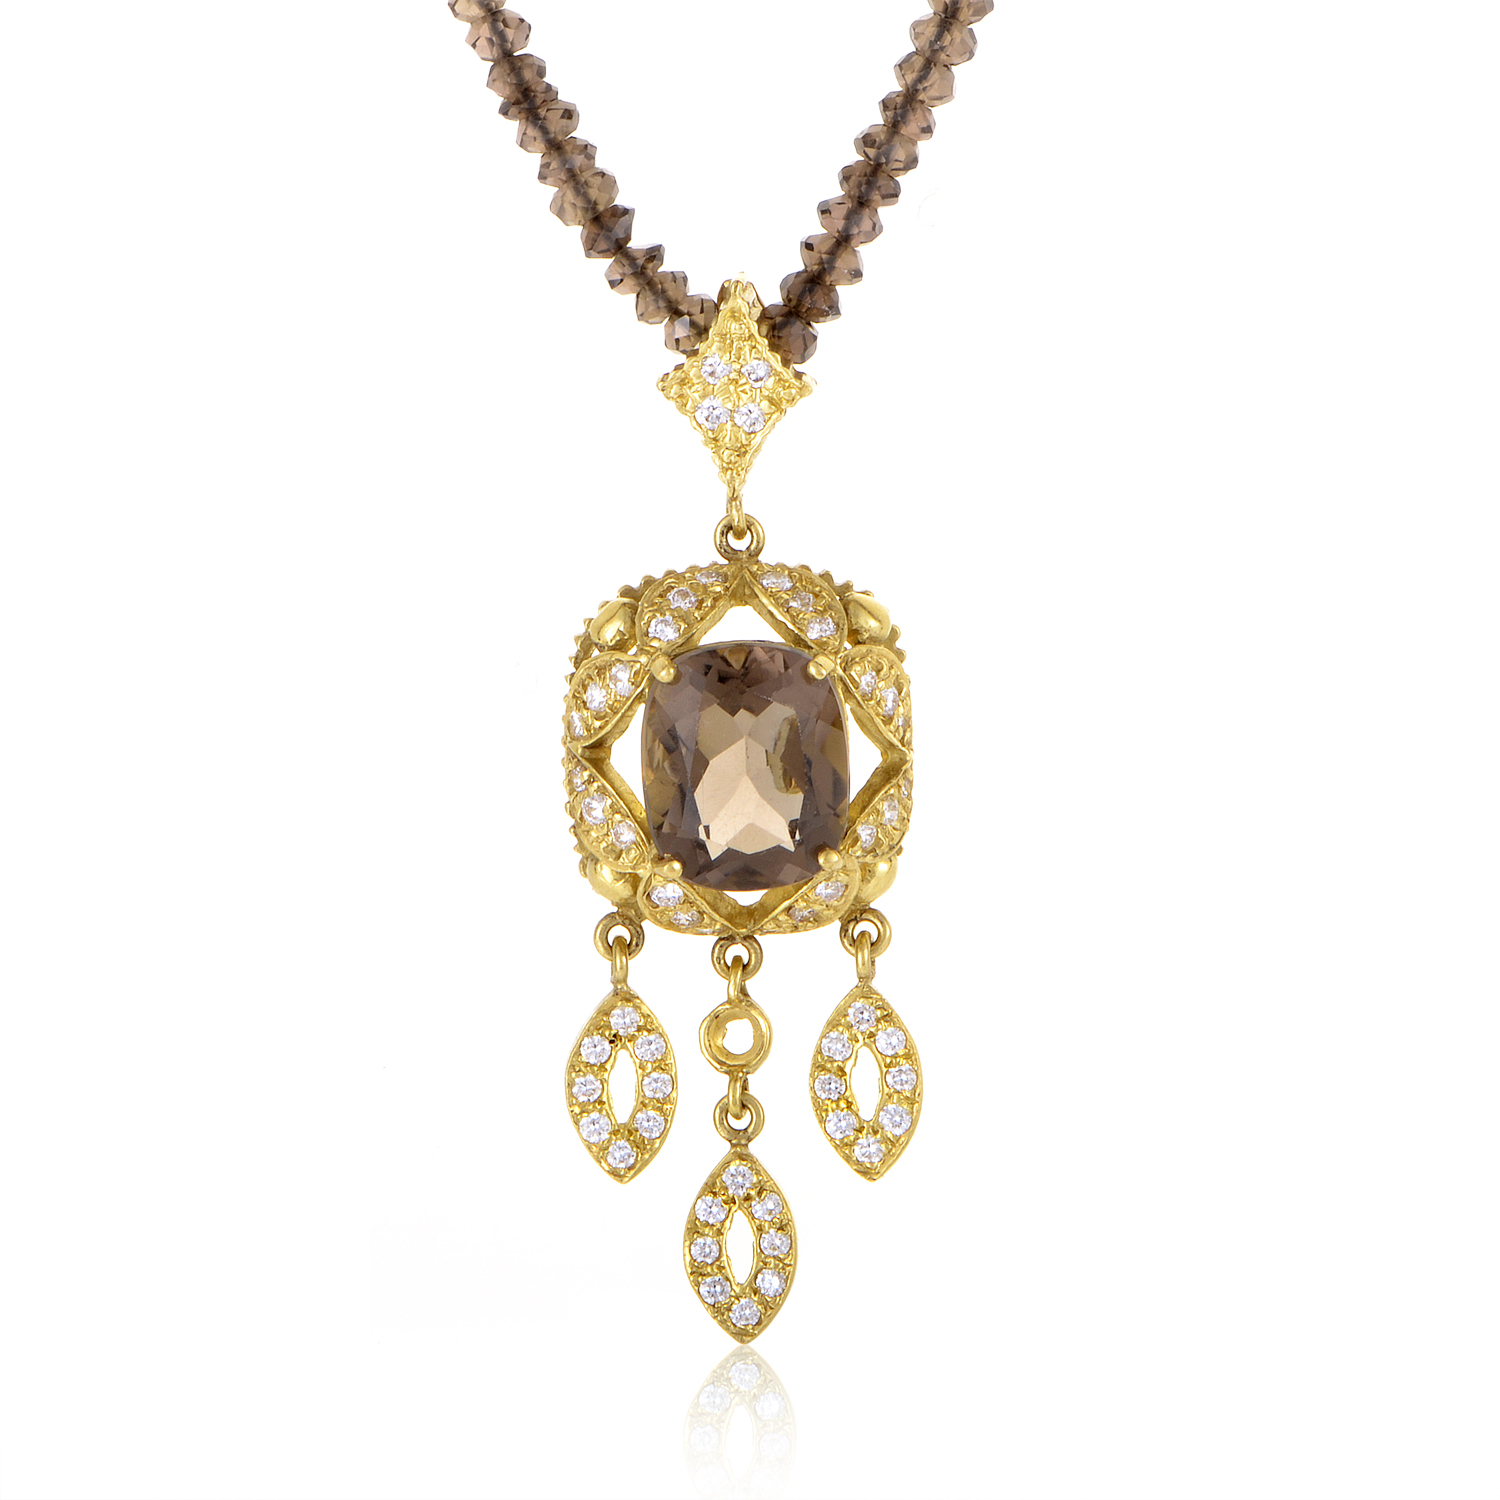 Doris Panos 18K Yellow Gold Smokey Topaz and Diamond Pendant Necklace